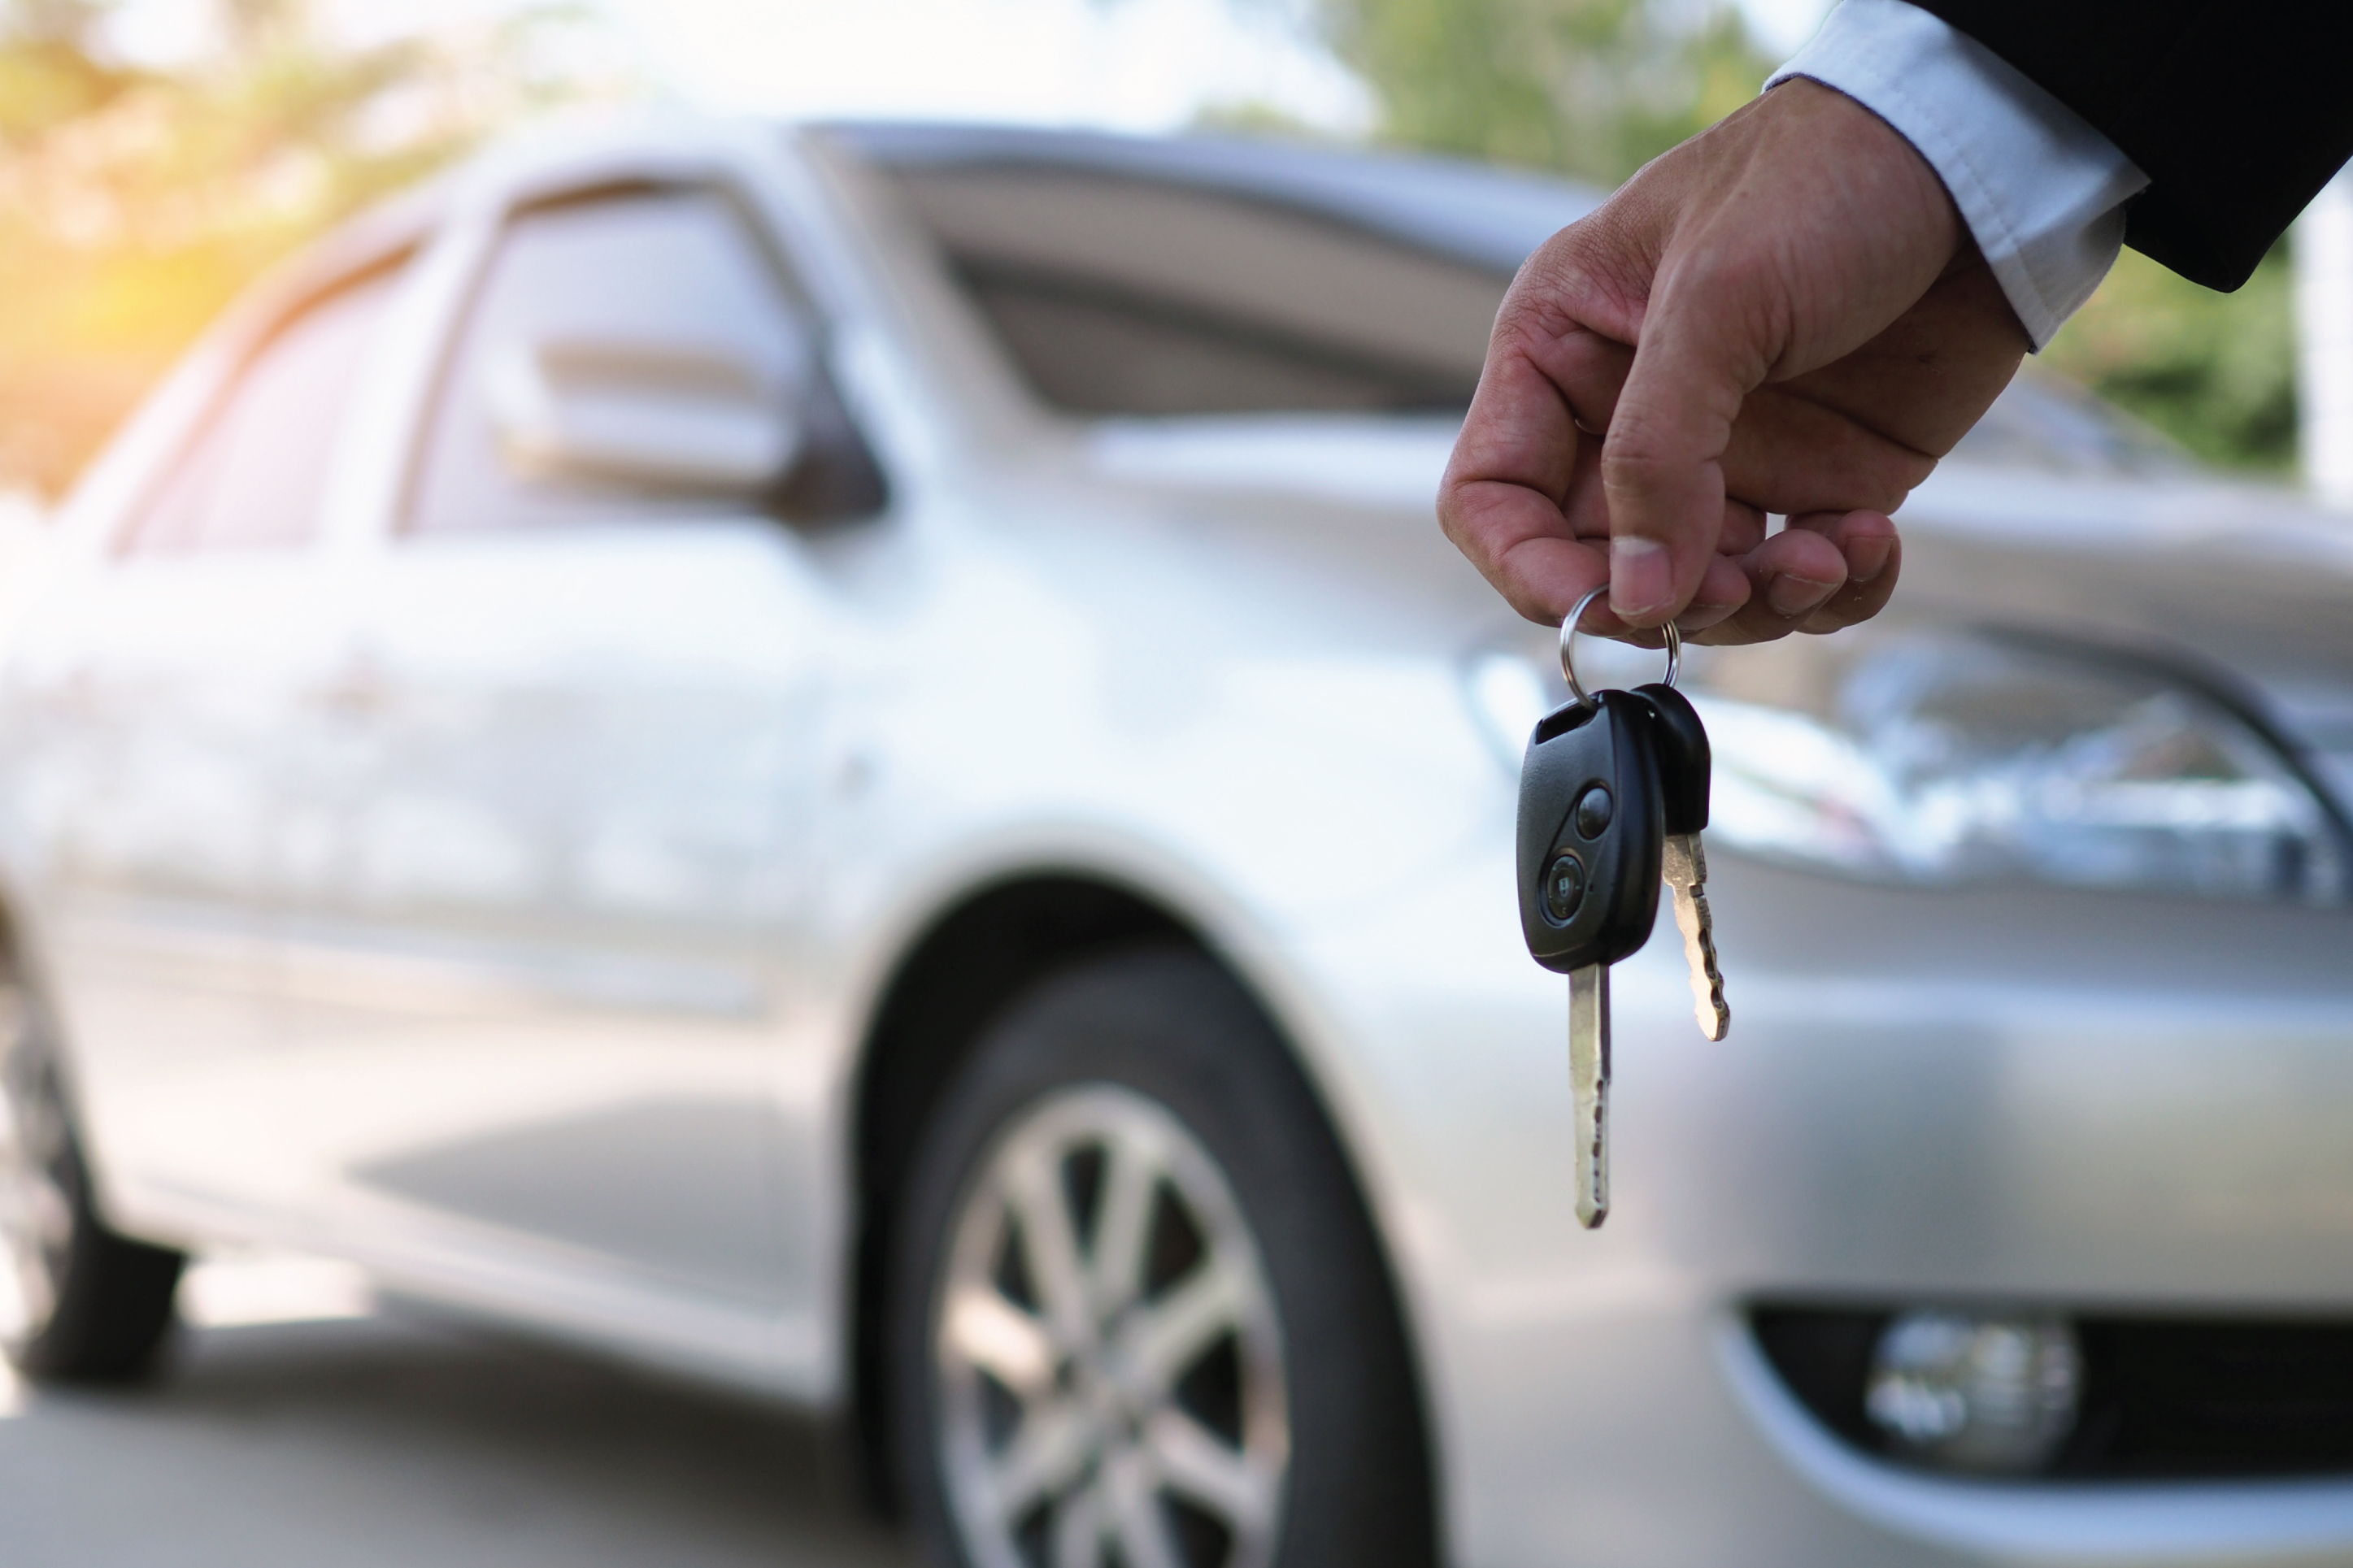 holding the keys to a car